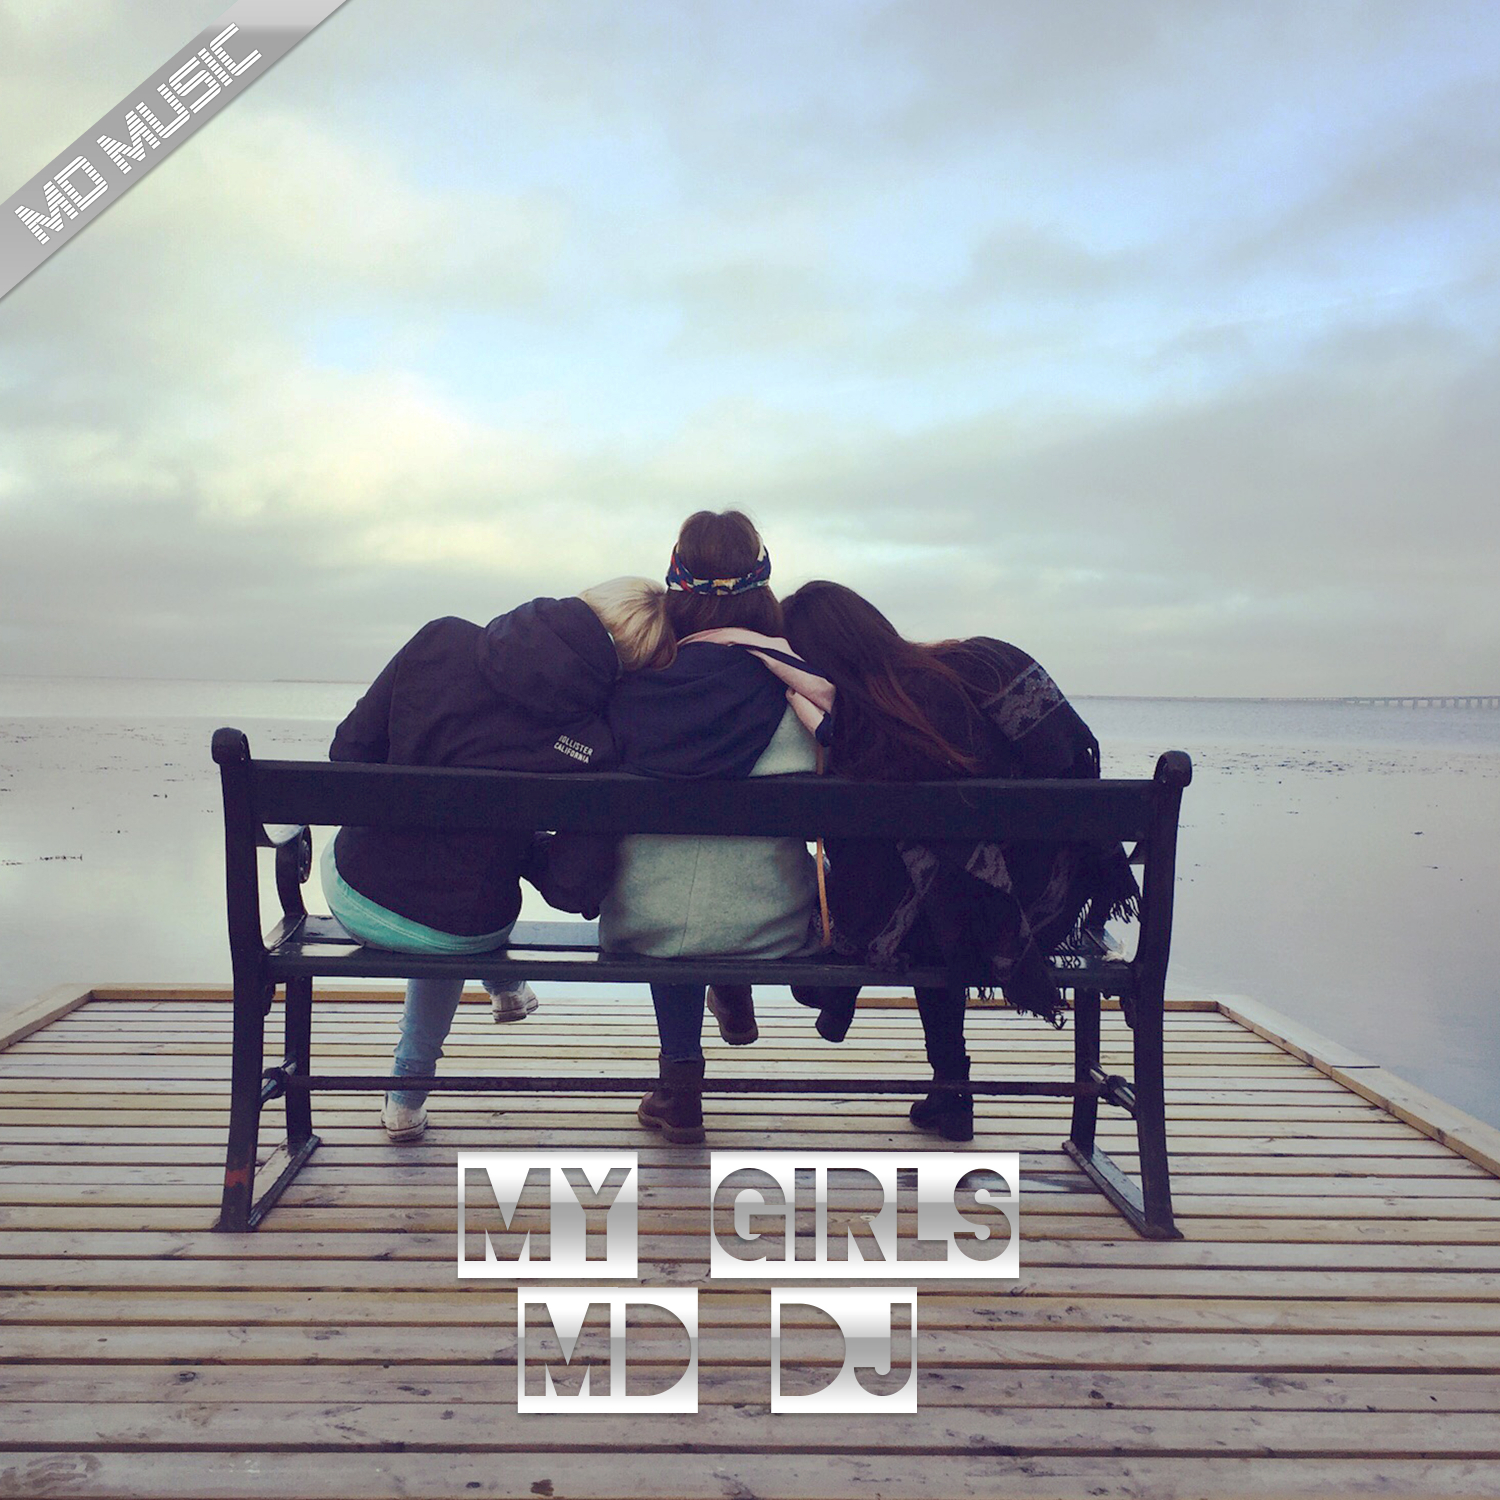 MD Dj - My Girls (Extended)